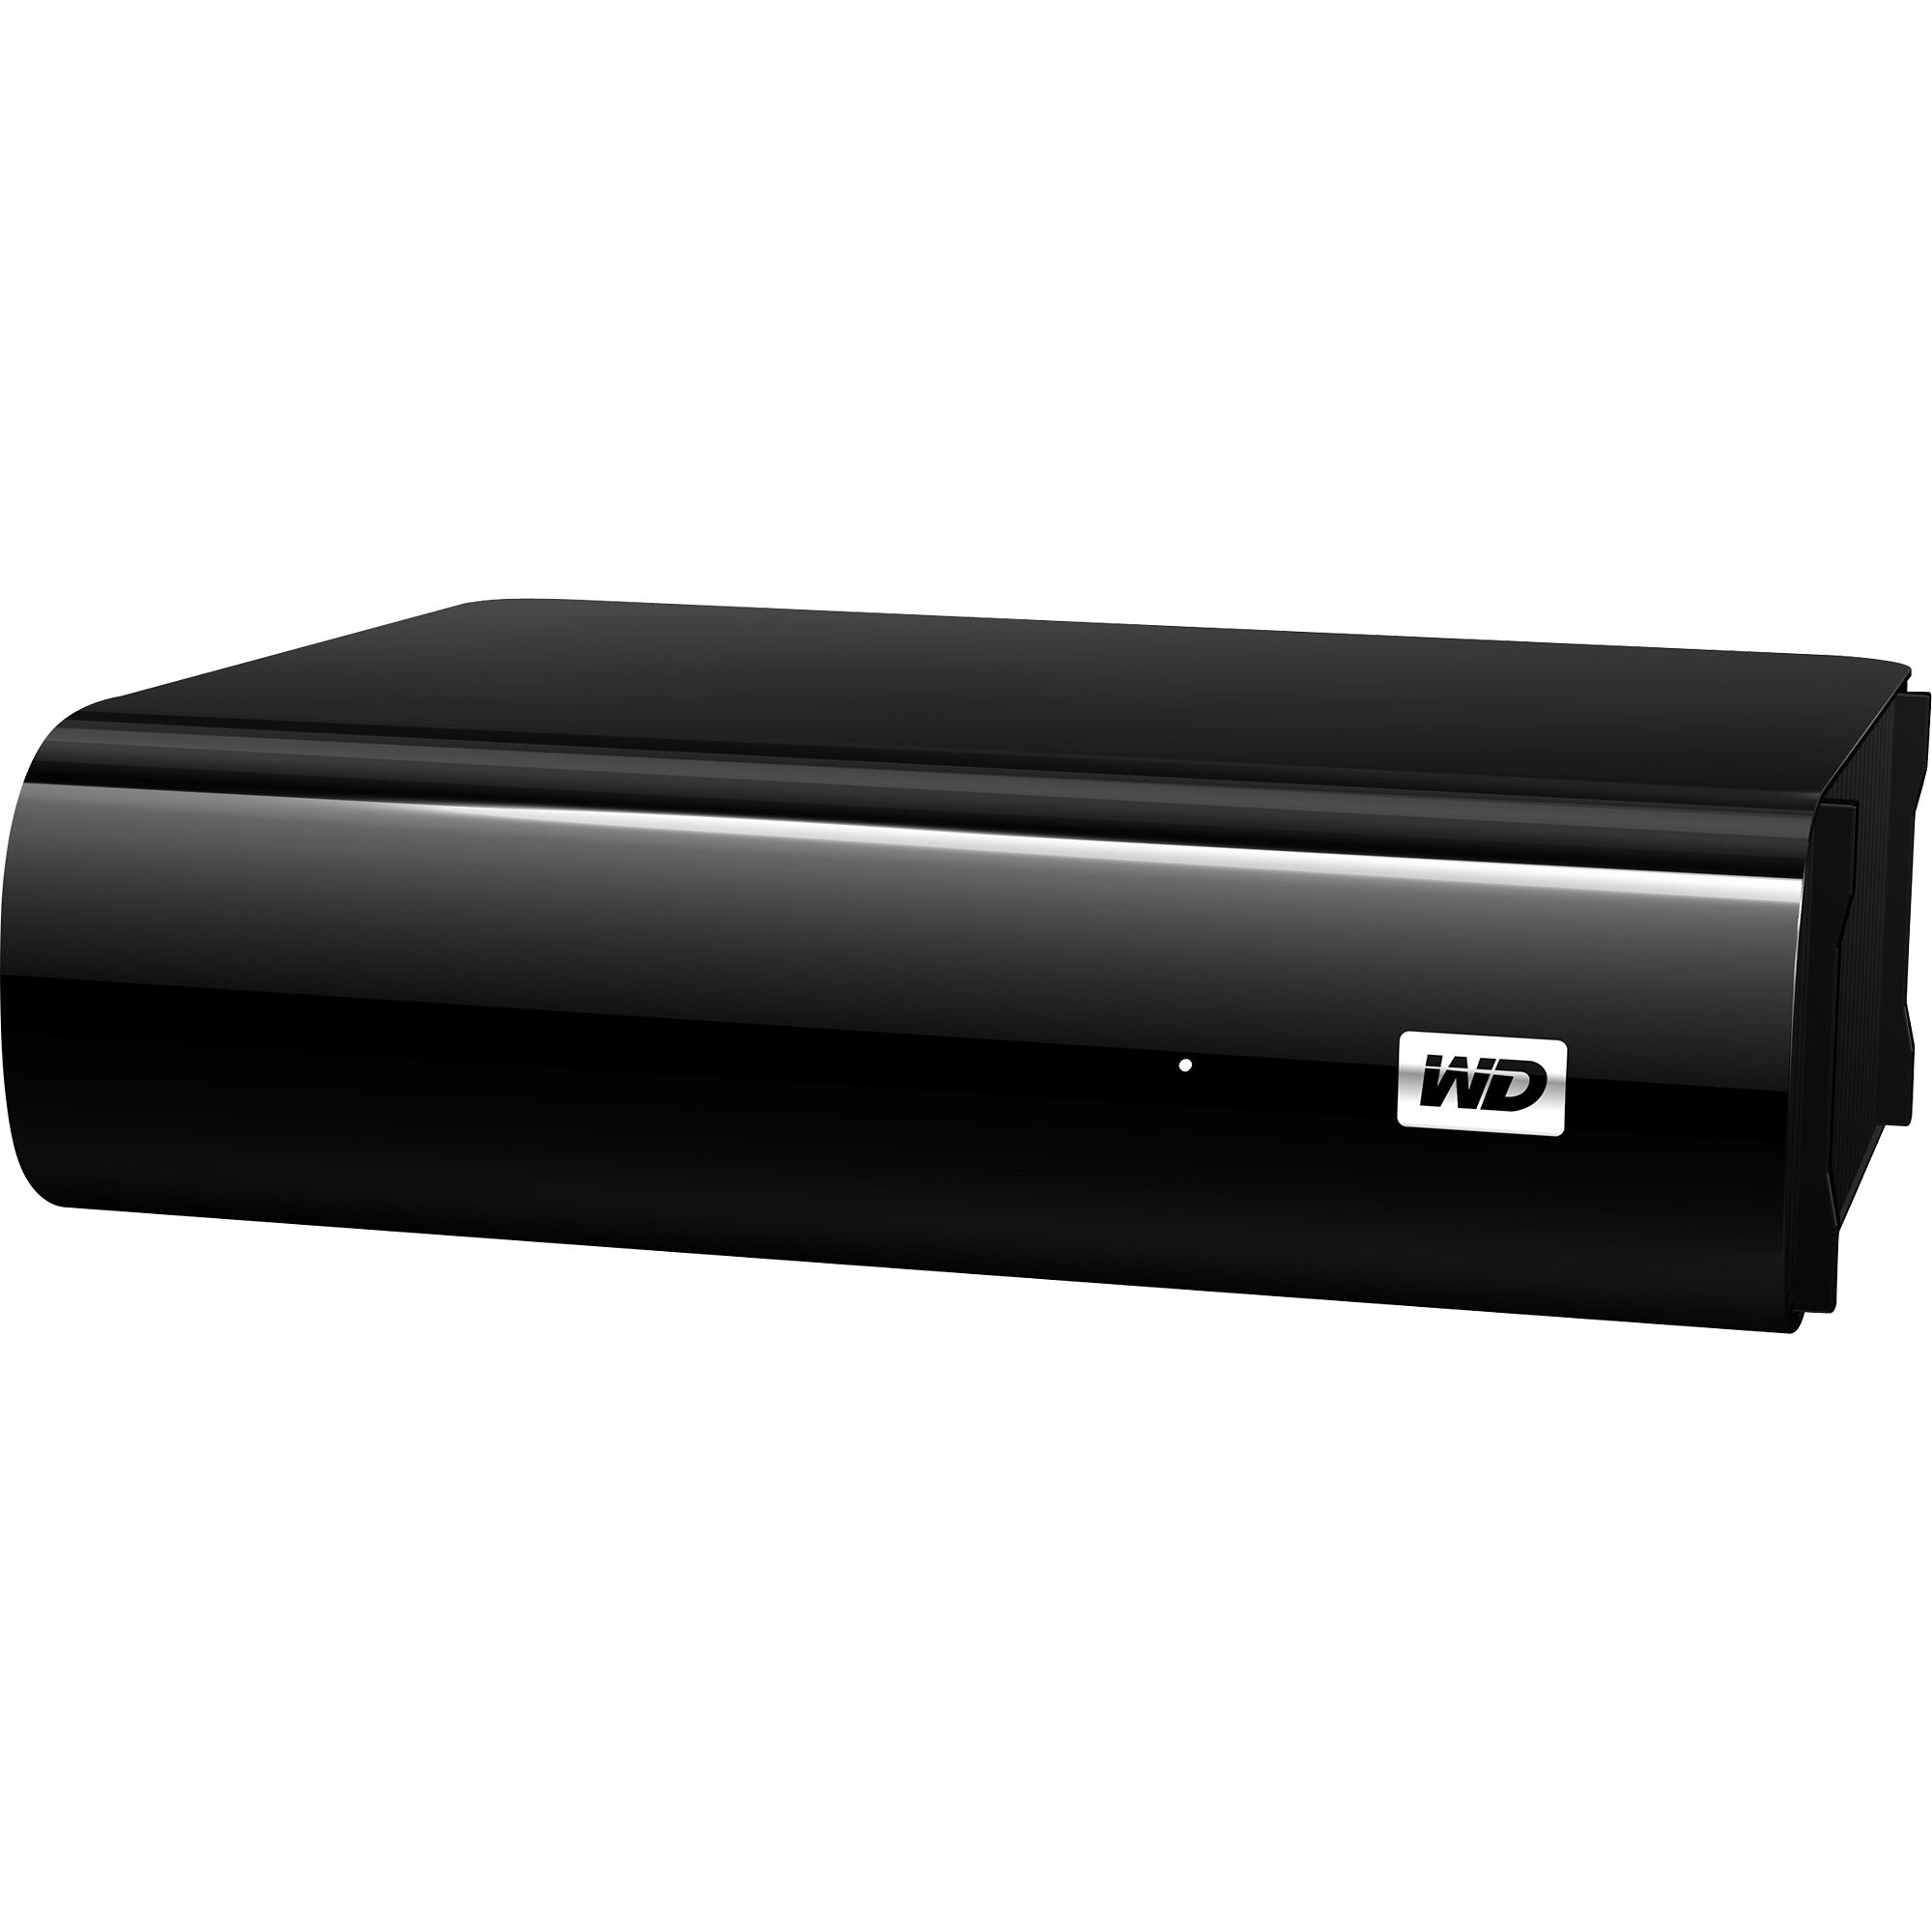 Western Digital Festplatte »My Book AV-TV 2 TB«